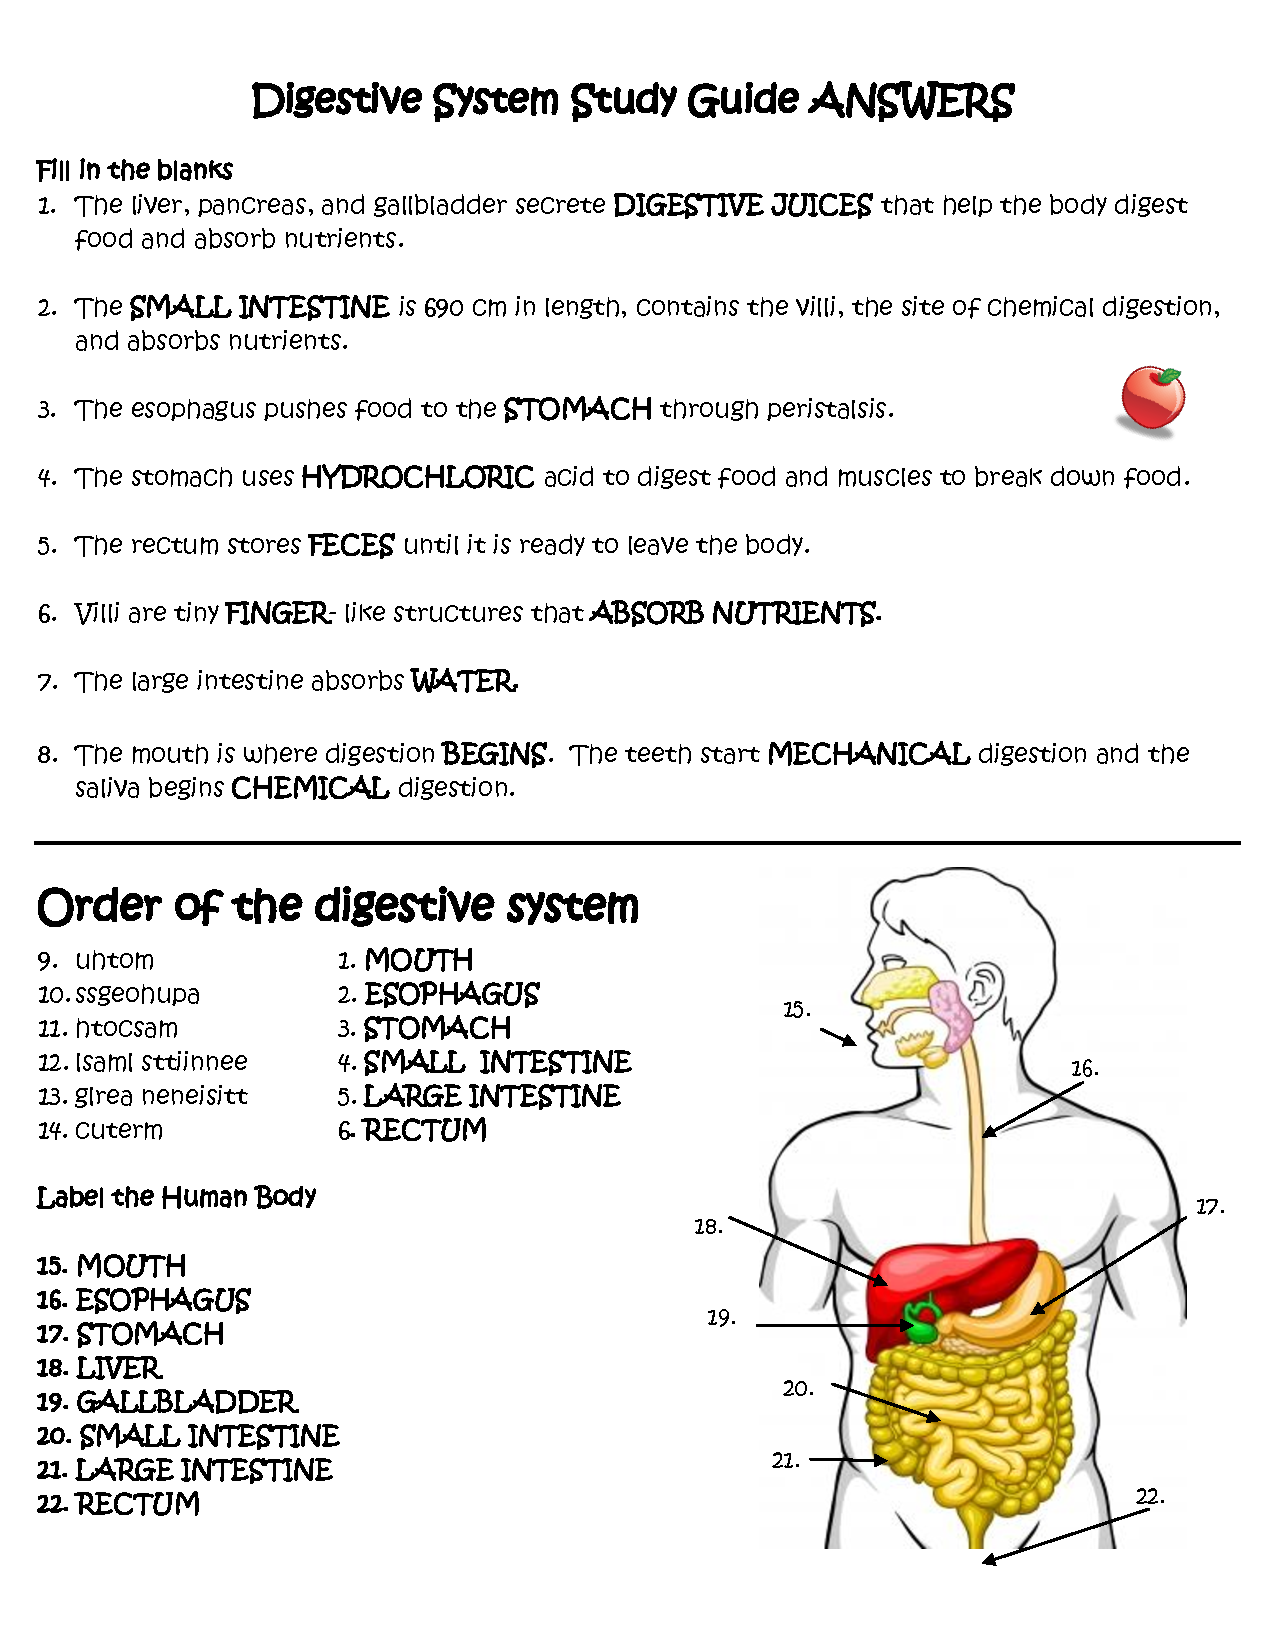 image for digestive system study guide living enviroment pinterest